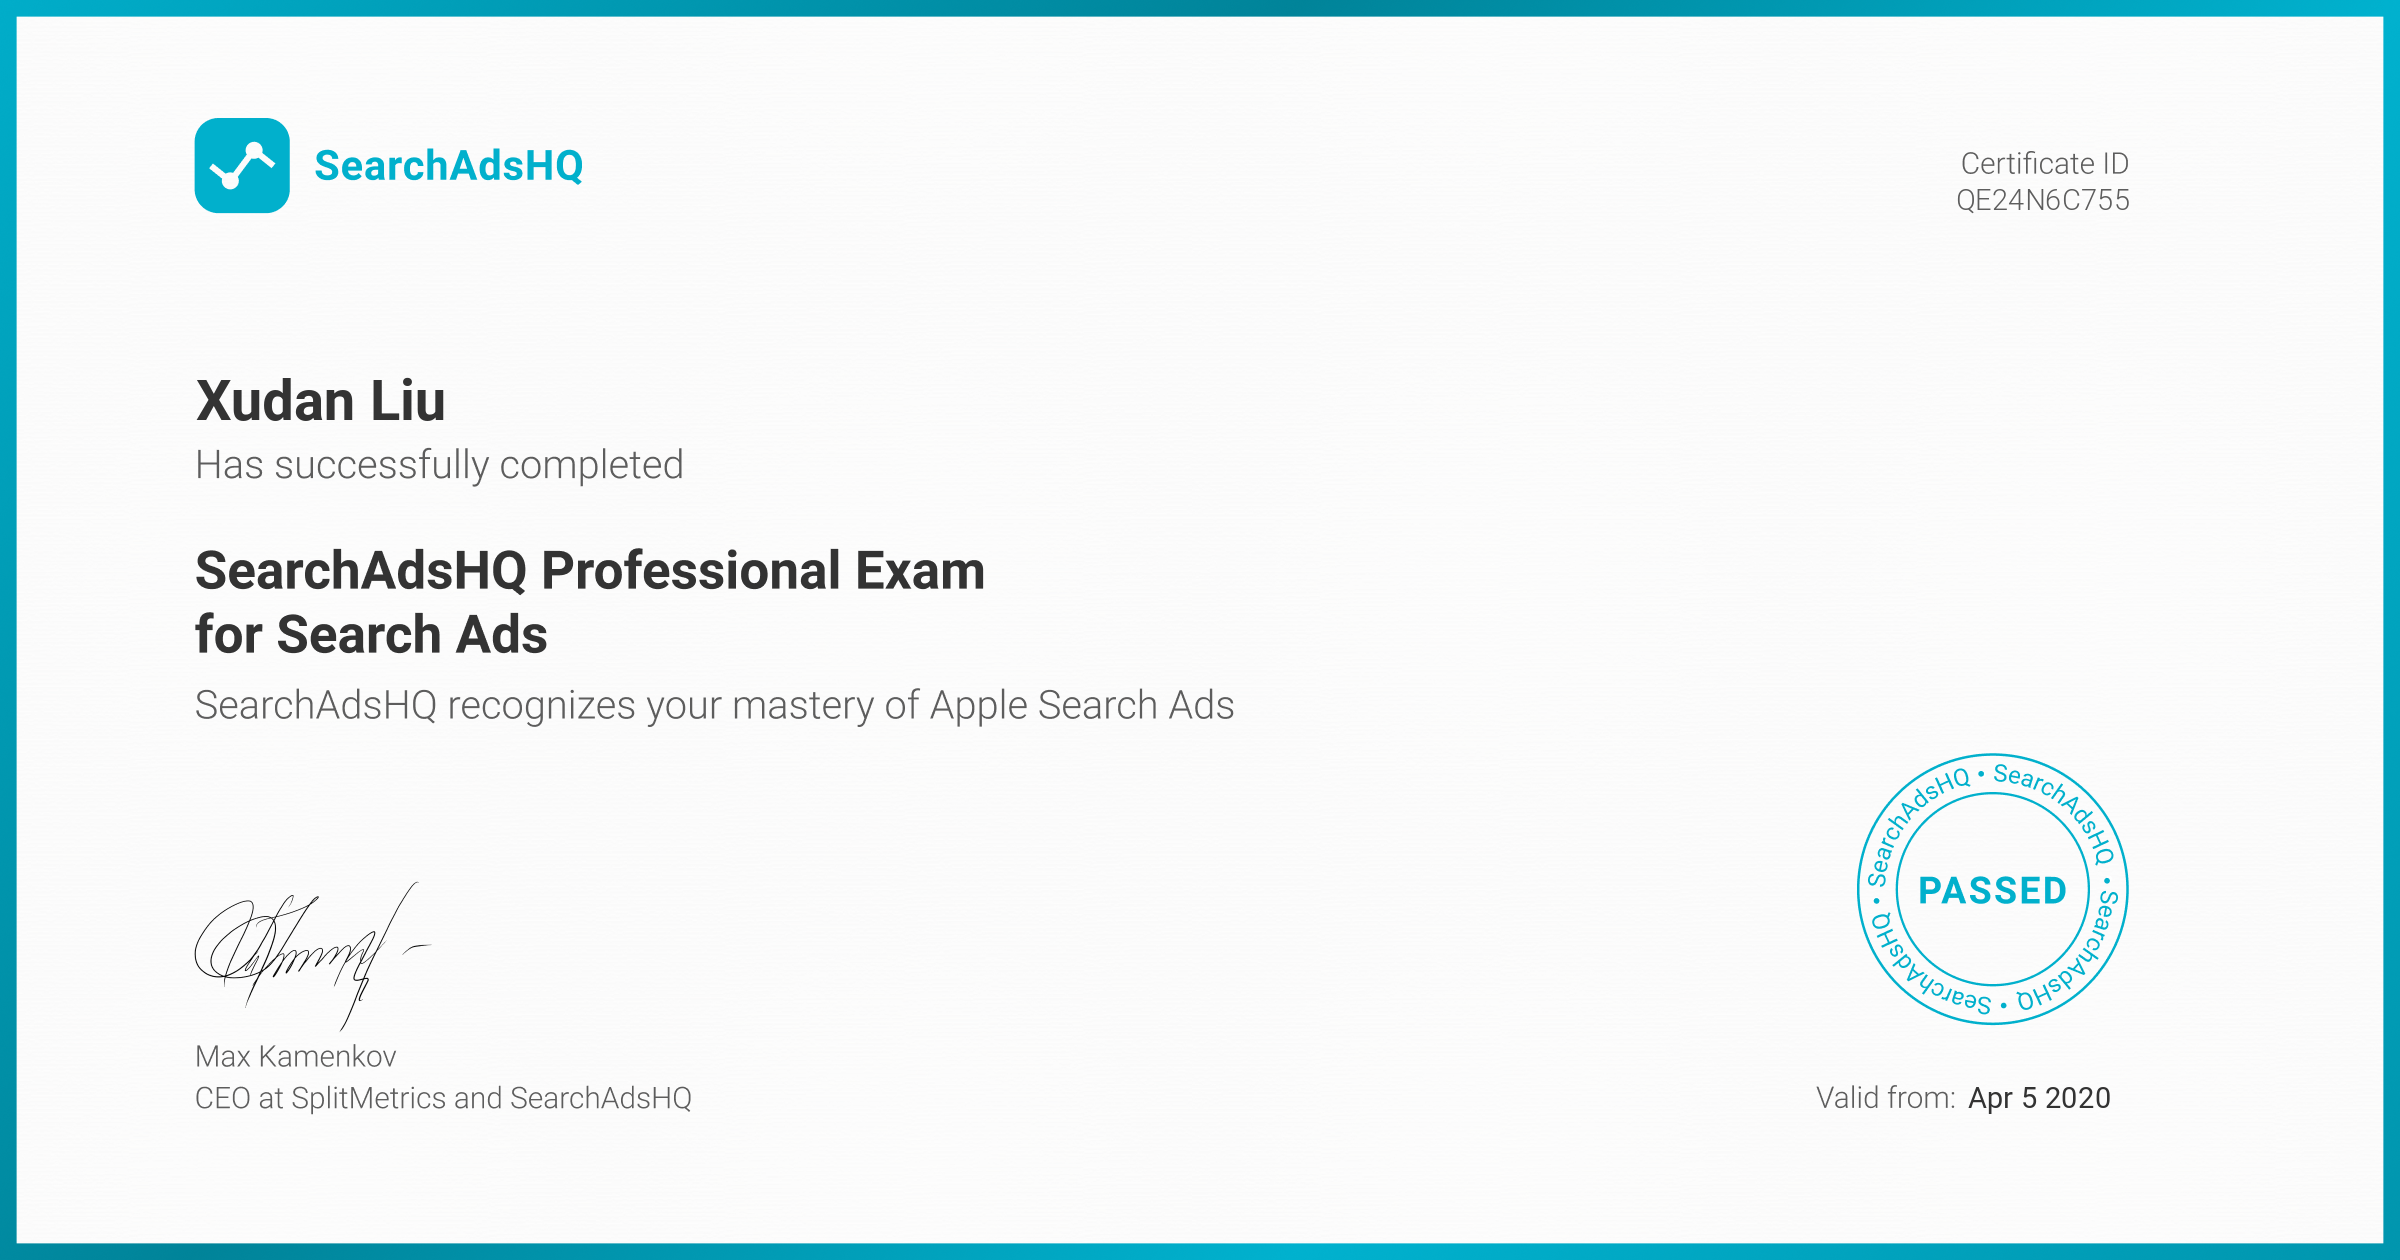 Certificate for Xudan Liu | SearchAdsHQ Professional Exam for Search Ads